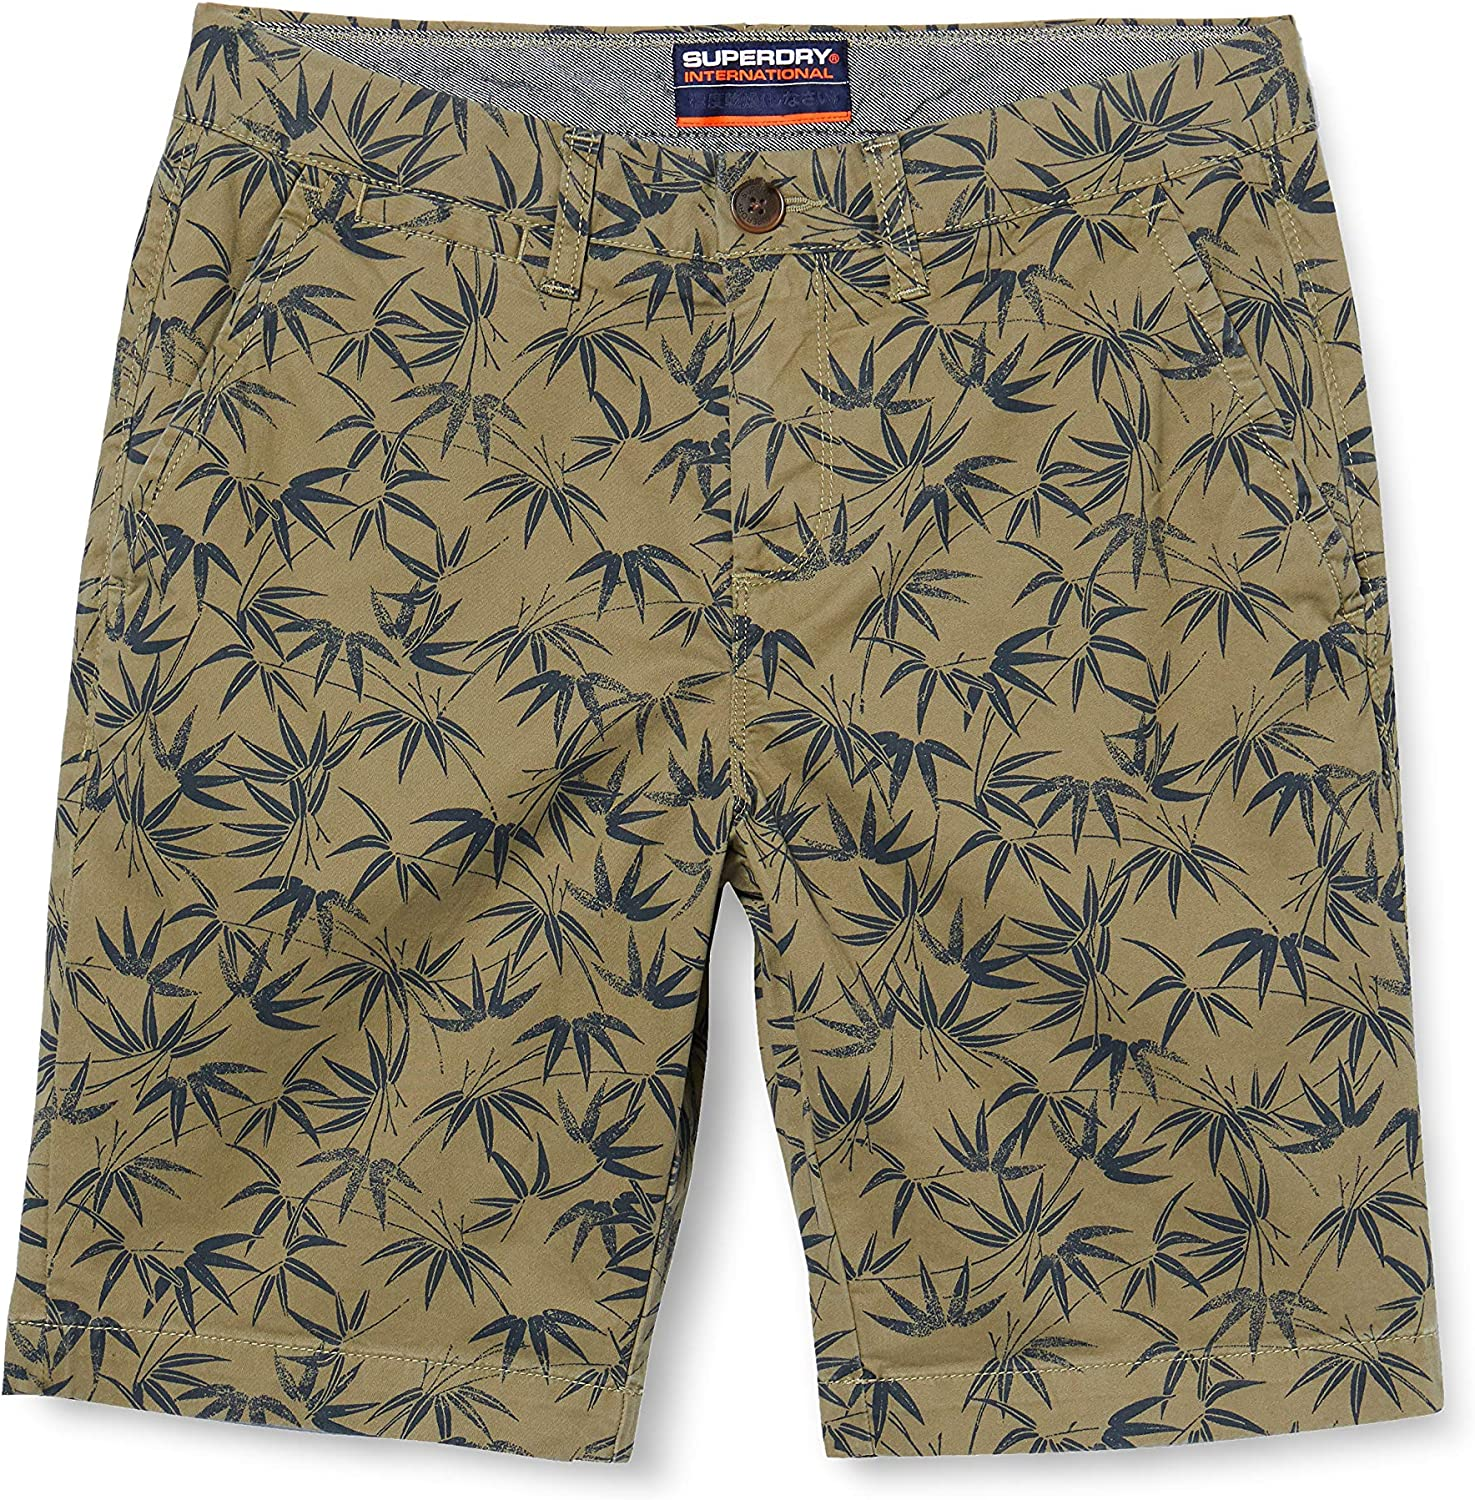 Superdry International Popularity Chino Shorts OFFicial shop